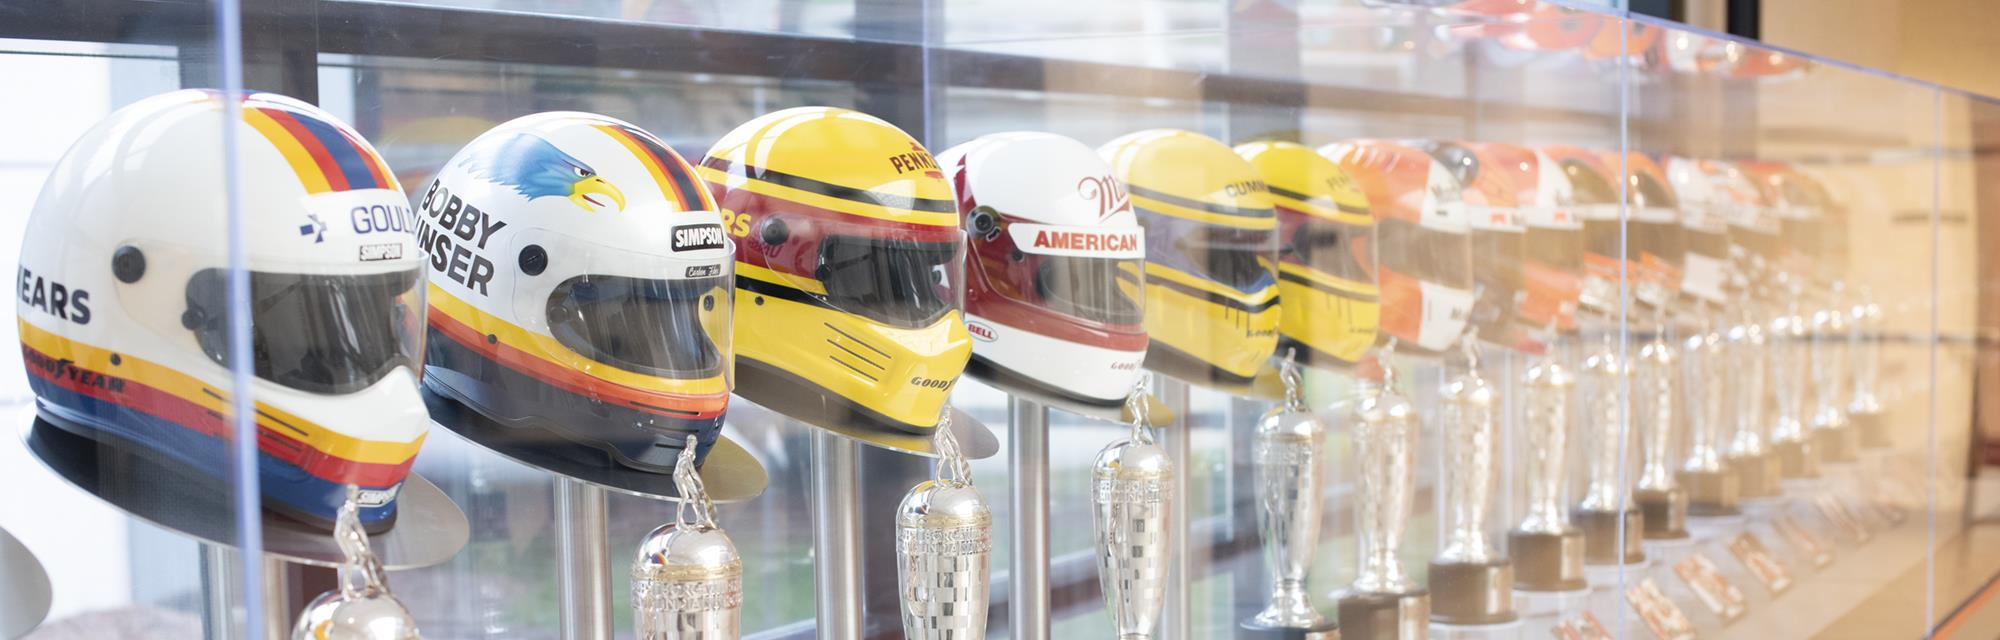 NASCAR helmet trophies on display